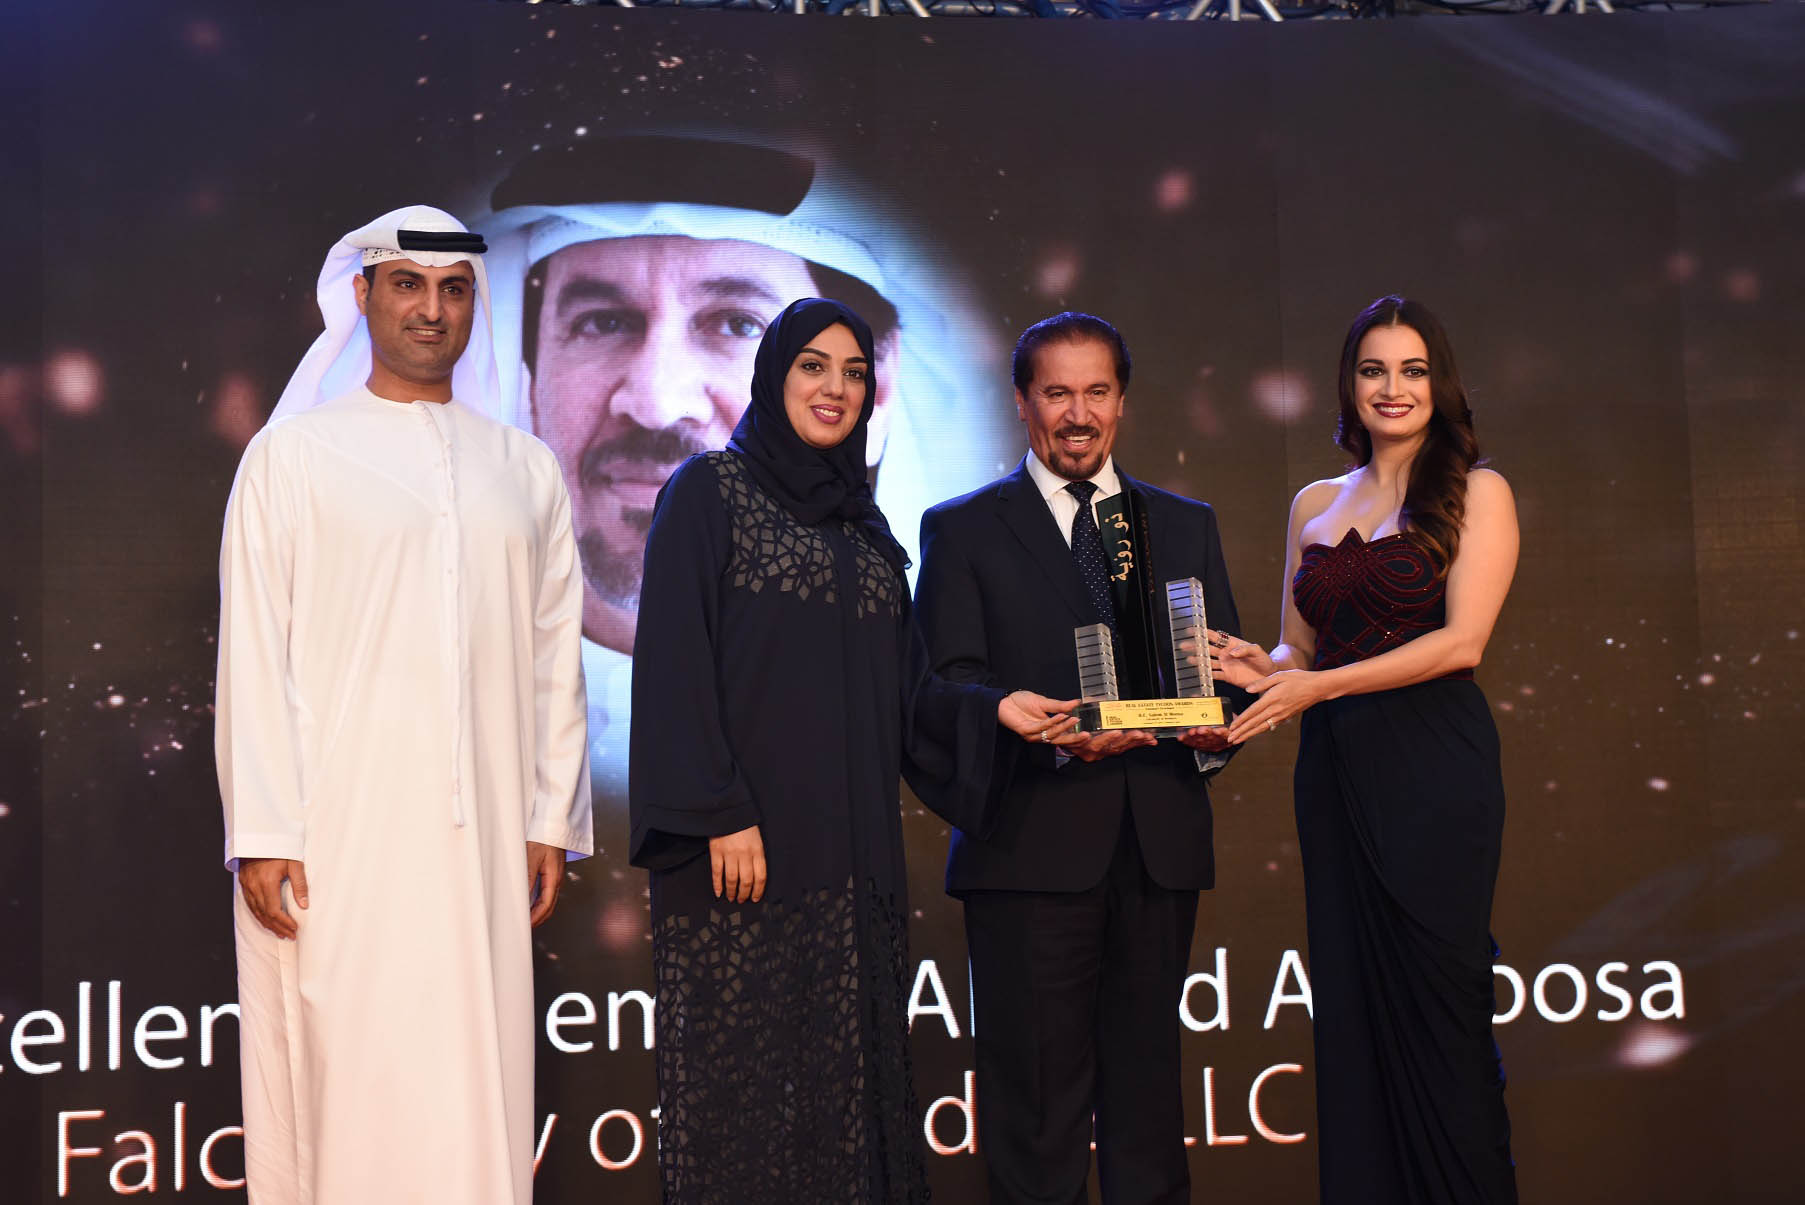 Falconcity of Wonders Chairman and General Manager H.E. Salem Almoosa Receives 'Visionary Award' from Dubai Land Department